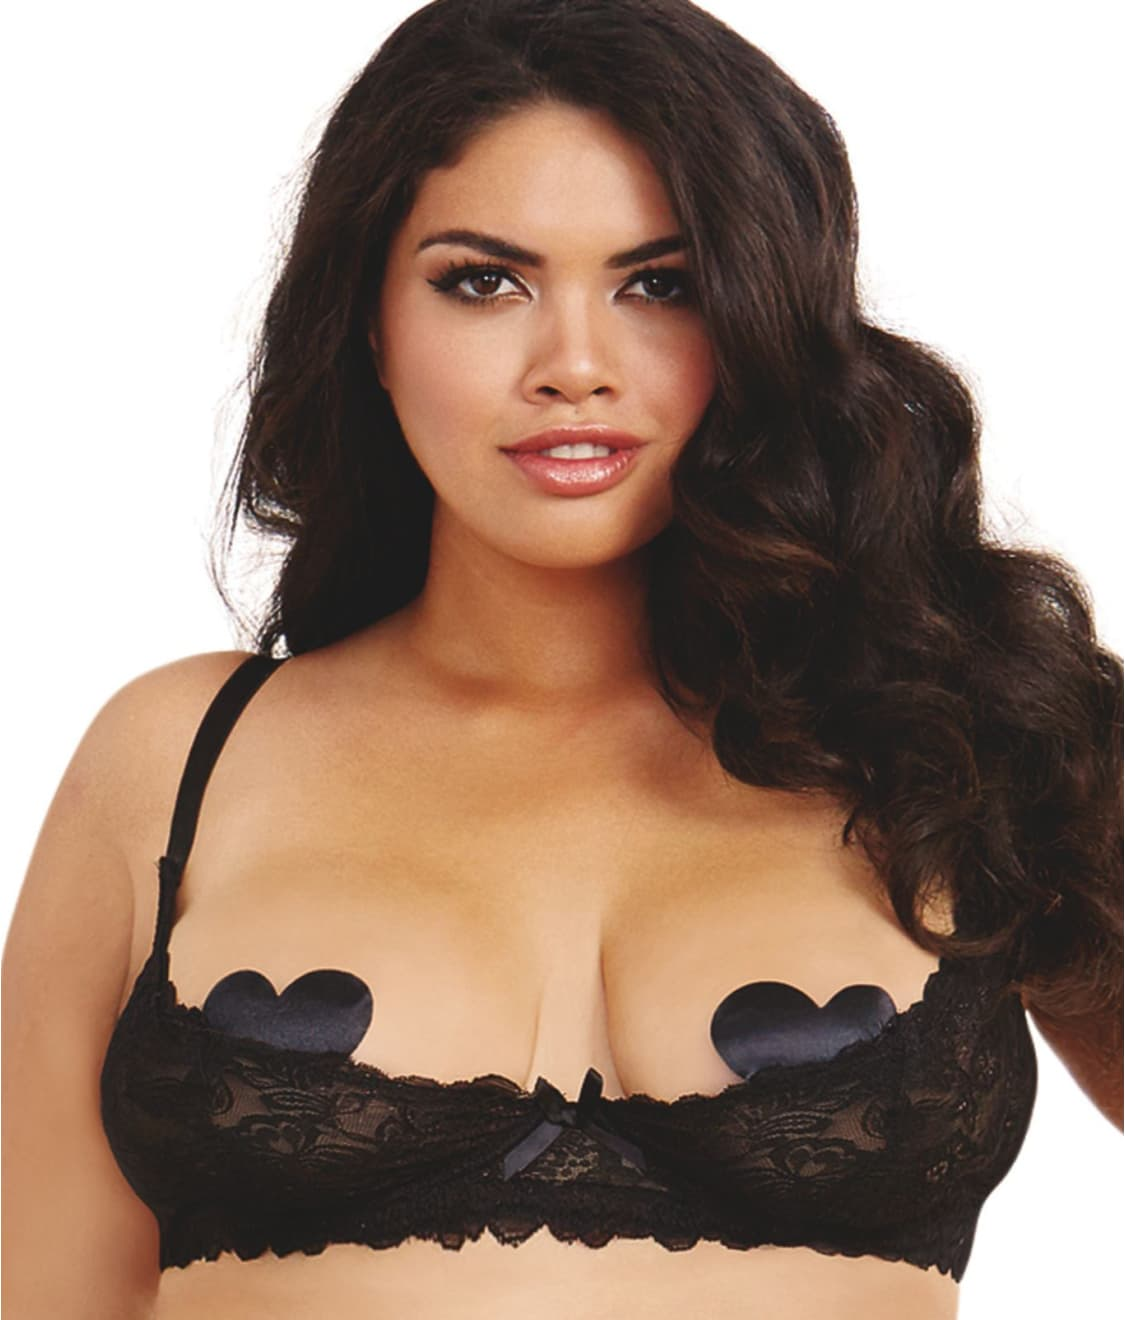 e2d12d3b729 Plus Size Sexy Lingerie by Dreamgirl | Bare Necessities